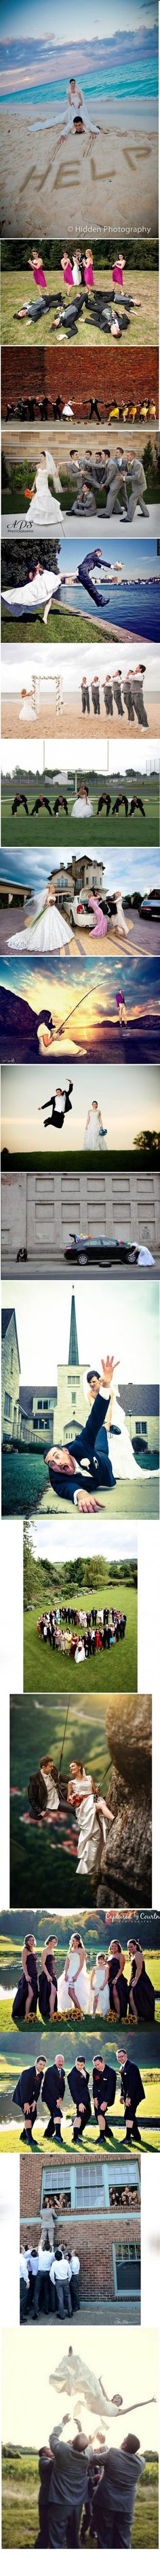 Unusual and fun wedding photos